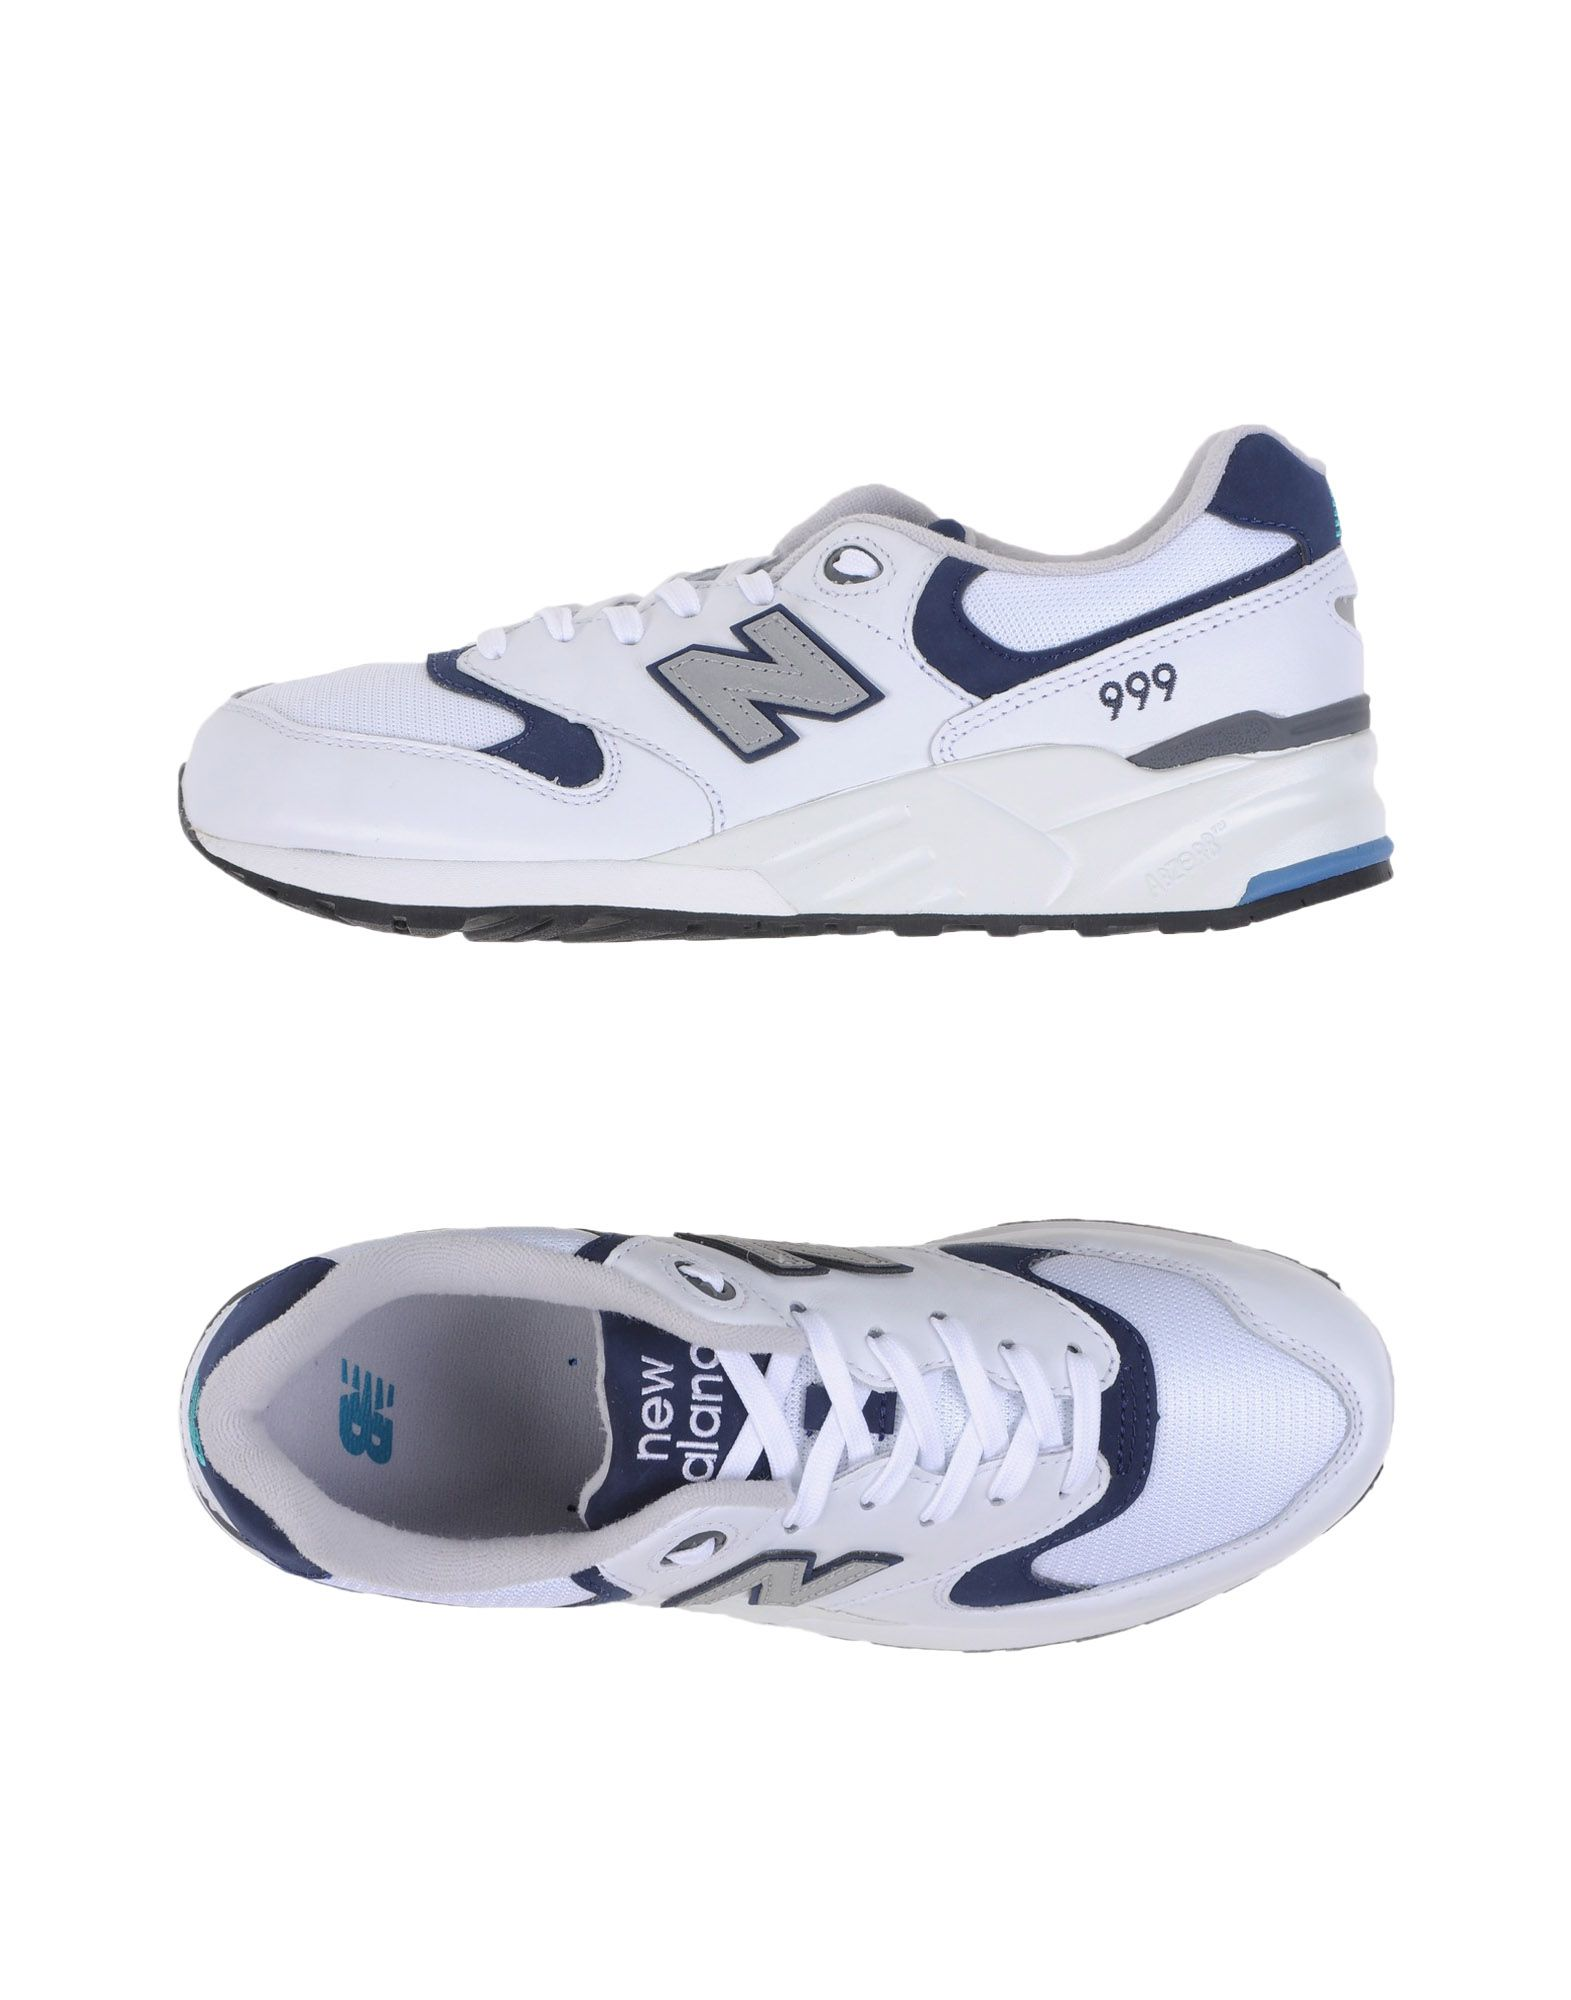 Rabatt And echte Schuhe New Balance 999 Black And Rabatt White Modern  11089025VK b891ef